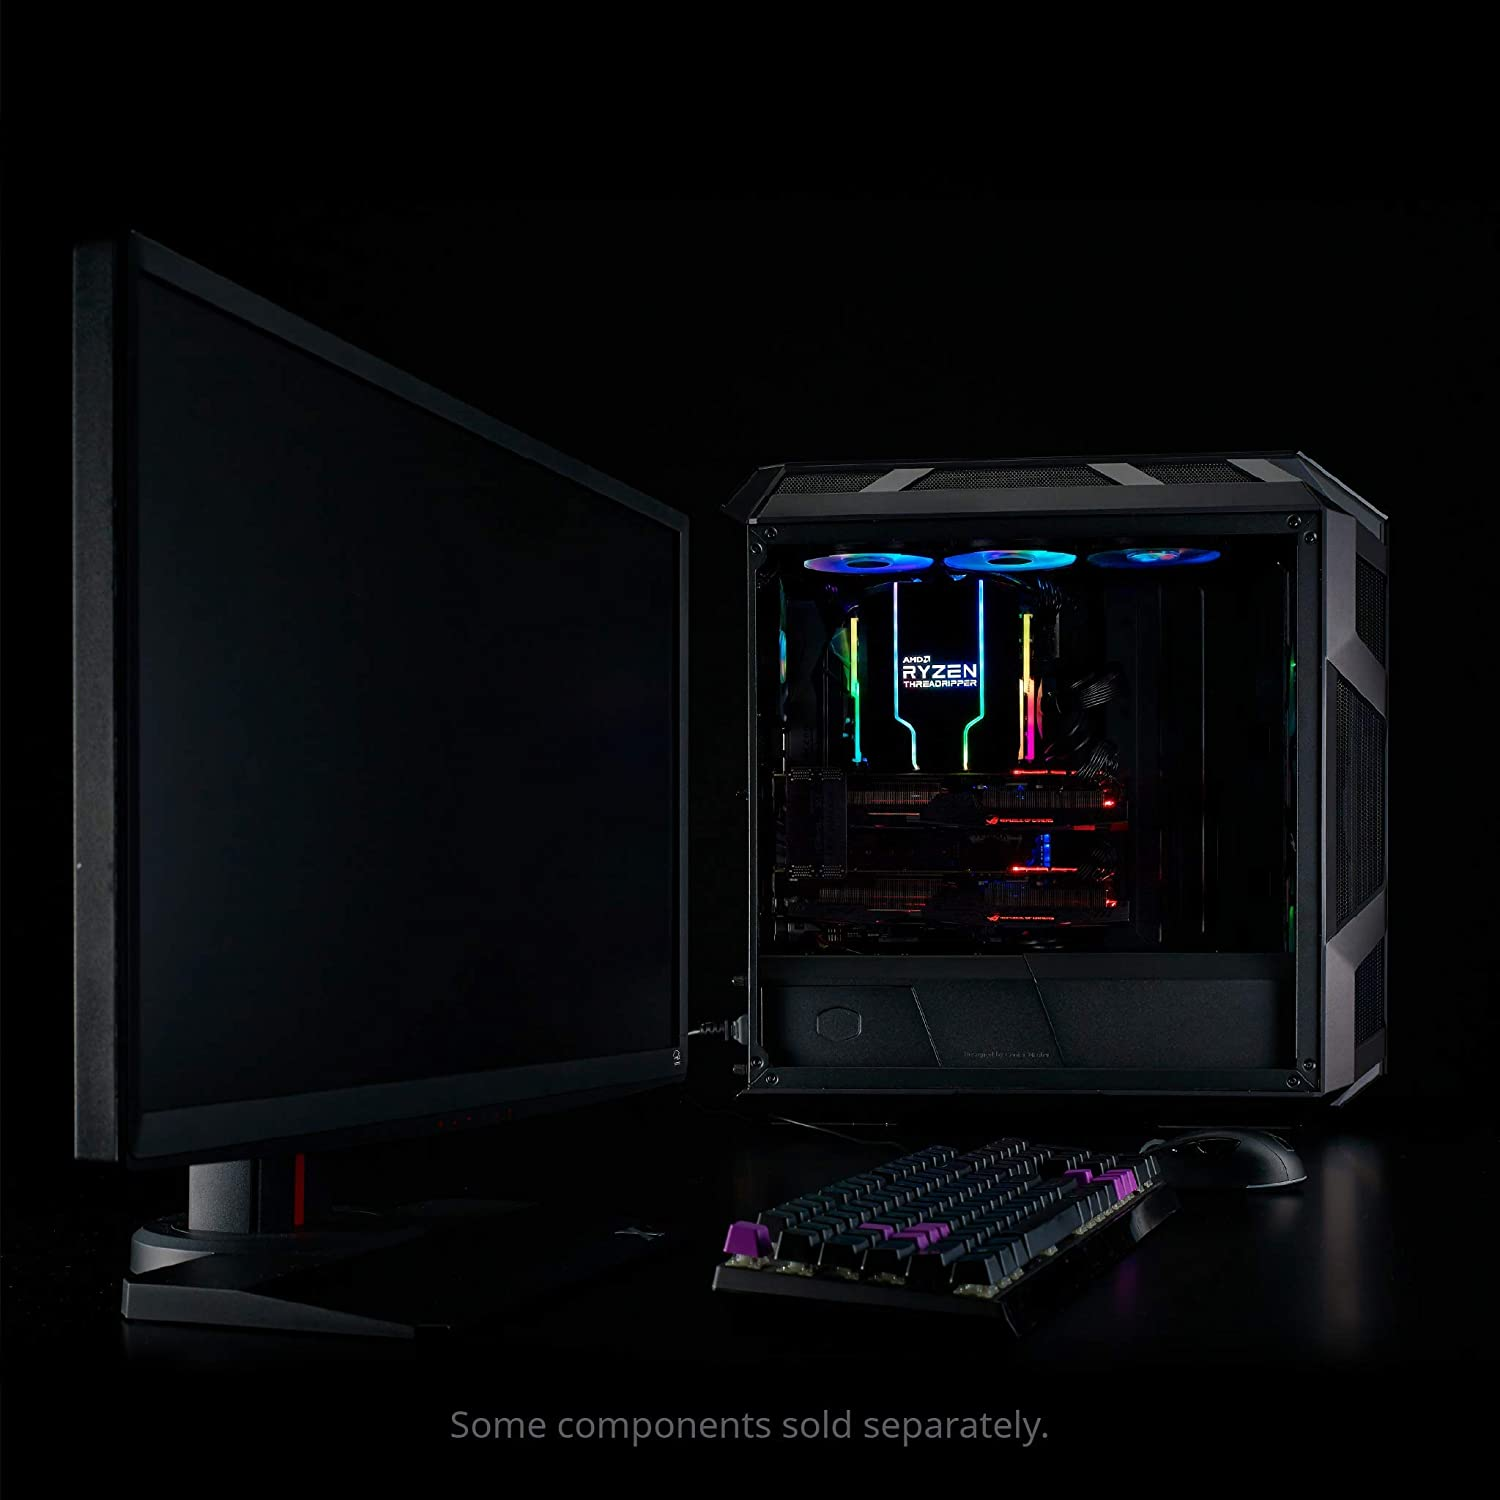 Hexagon Logo SF120R 120mm Fan Cooler Master MasterAir MA620M Dual Tower Addressable RGB High Performance CPU Air Cooler w// 6 Continuous Direct Contact 2.0 Heatpipes Embedded Addressable RGB Lightin